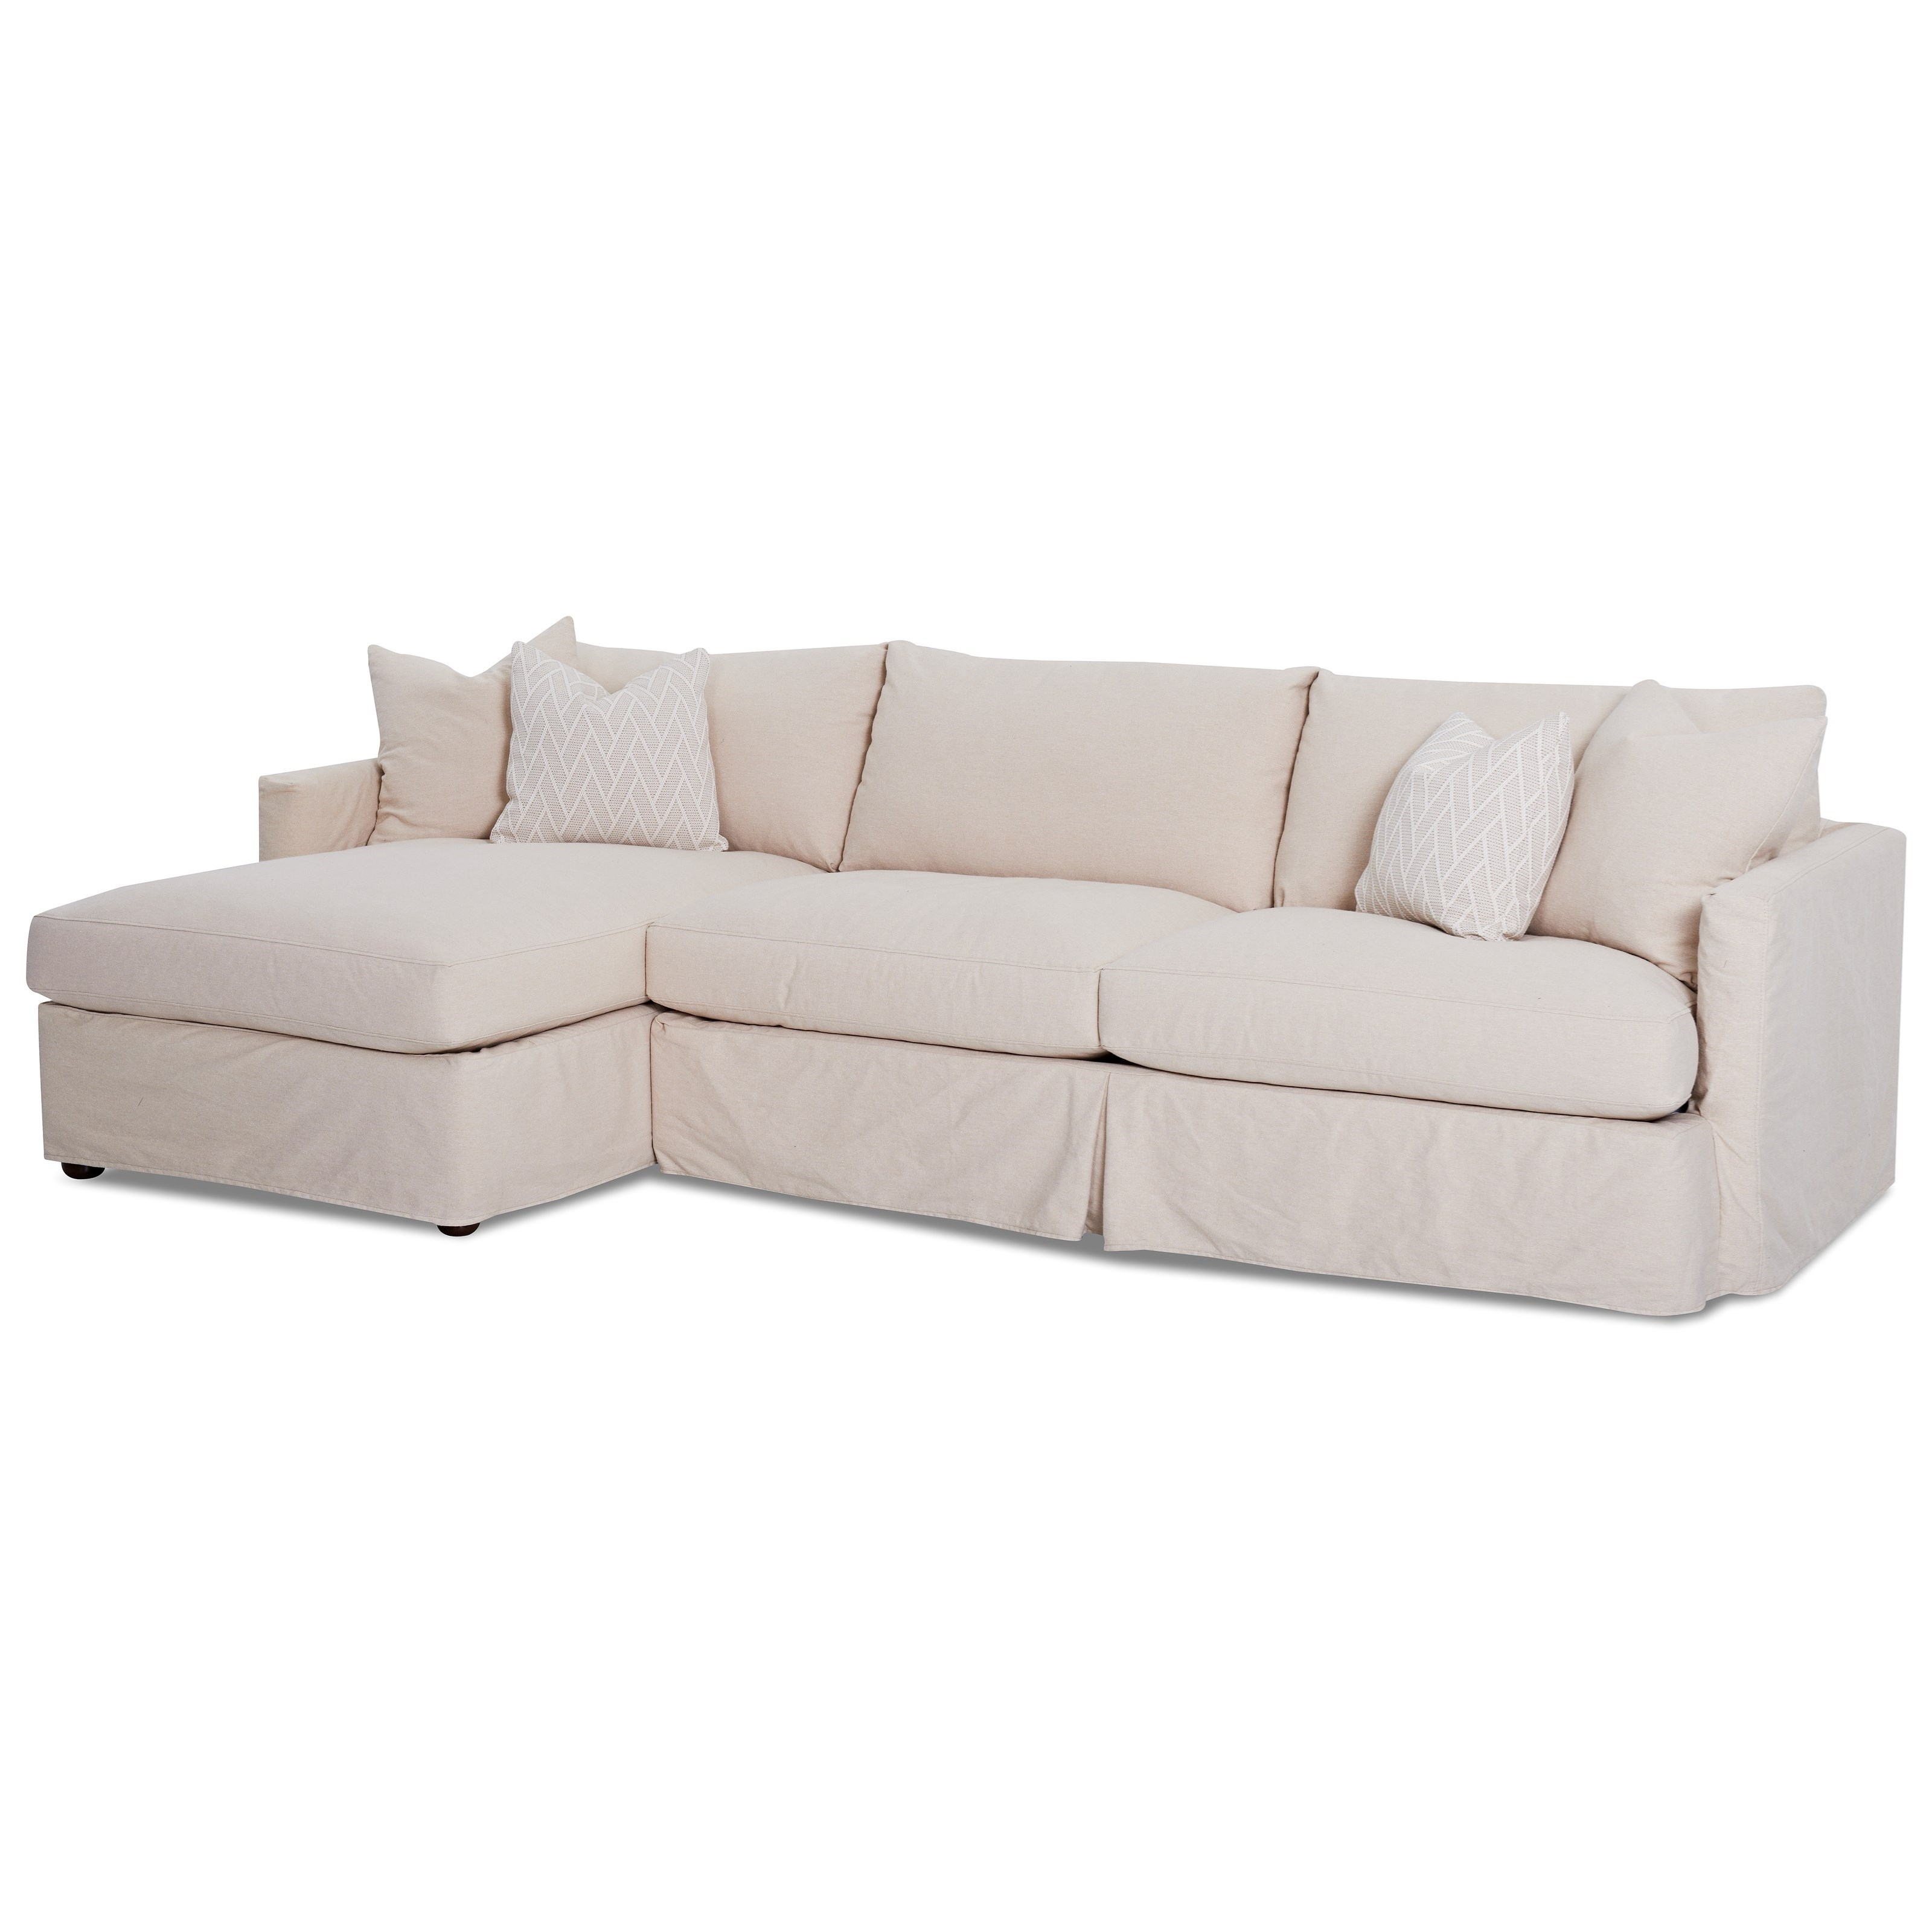 Laf Chaise Sectional Sofa | Baci Living Room Intended For Malbry Point 3 Piece Sectionals With Raf Chaise (View 17 of 25)